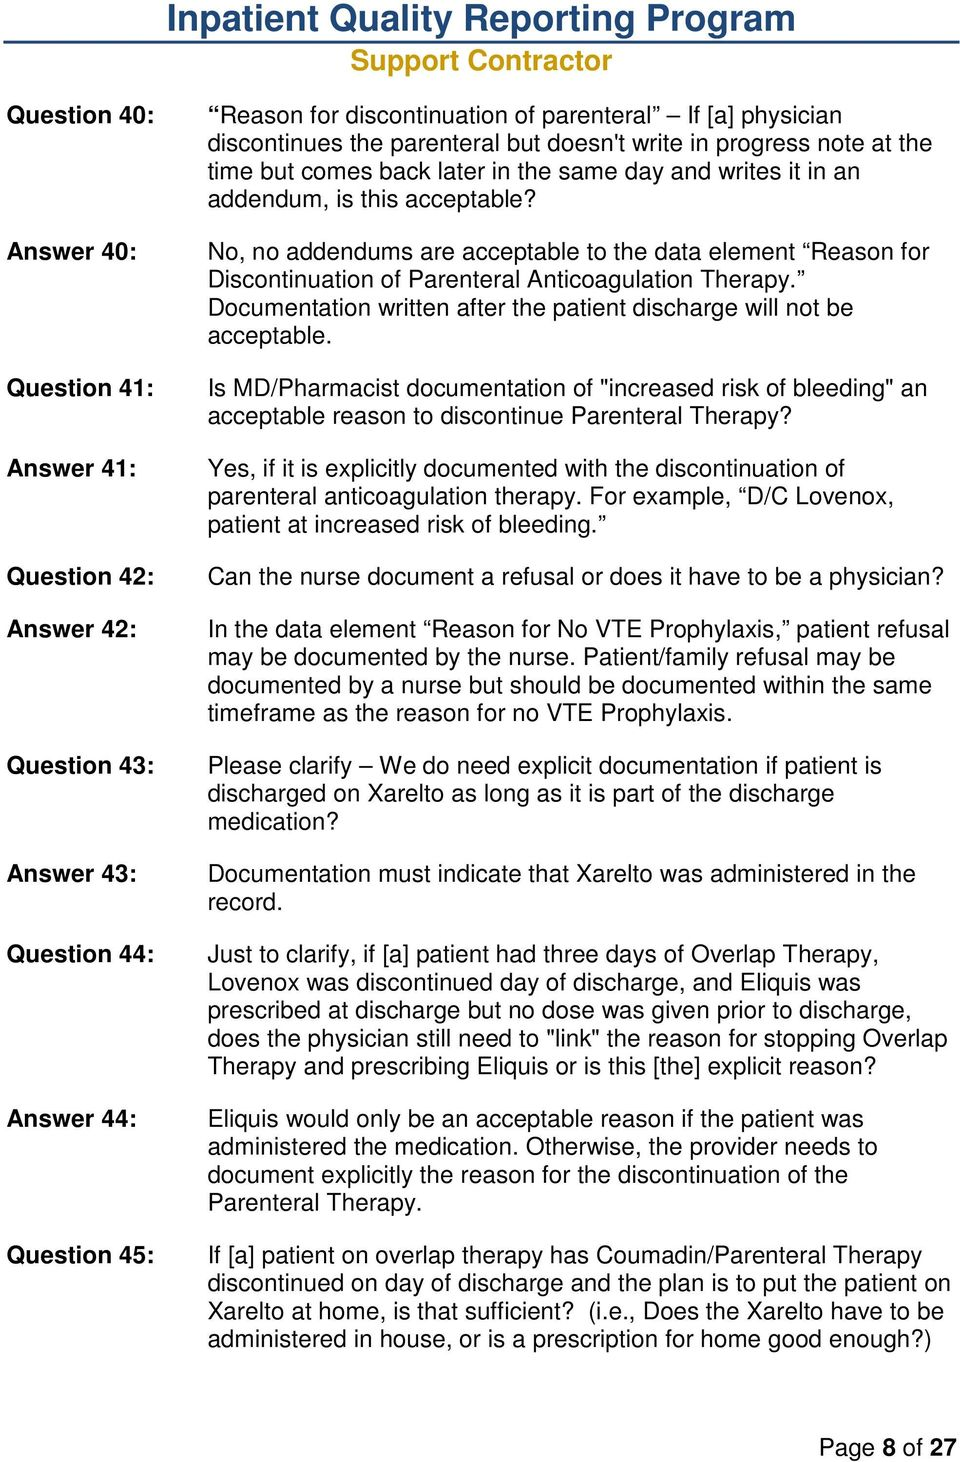 No, no addendums are acceptable to the data element Reason for Discontinuation of Parenteral Anticoagulation Therapy. Documentation written after the patient discharge will not be acceptable.